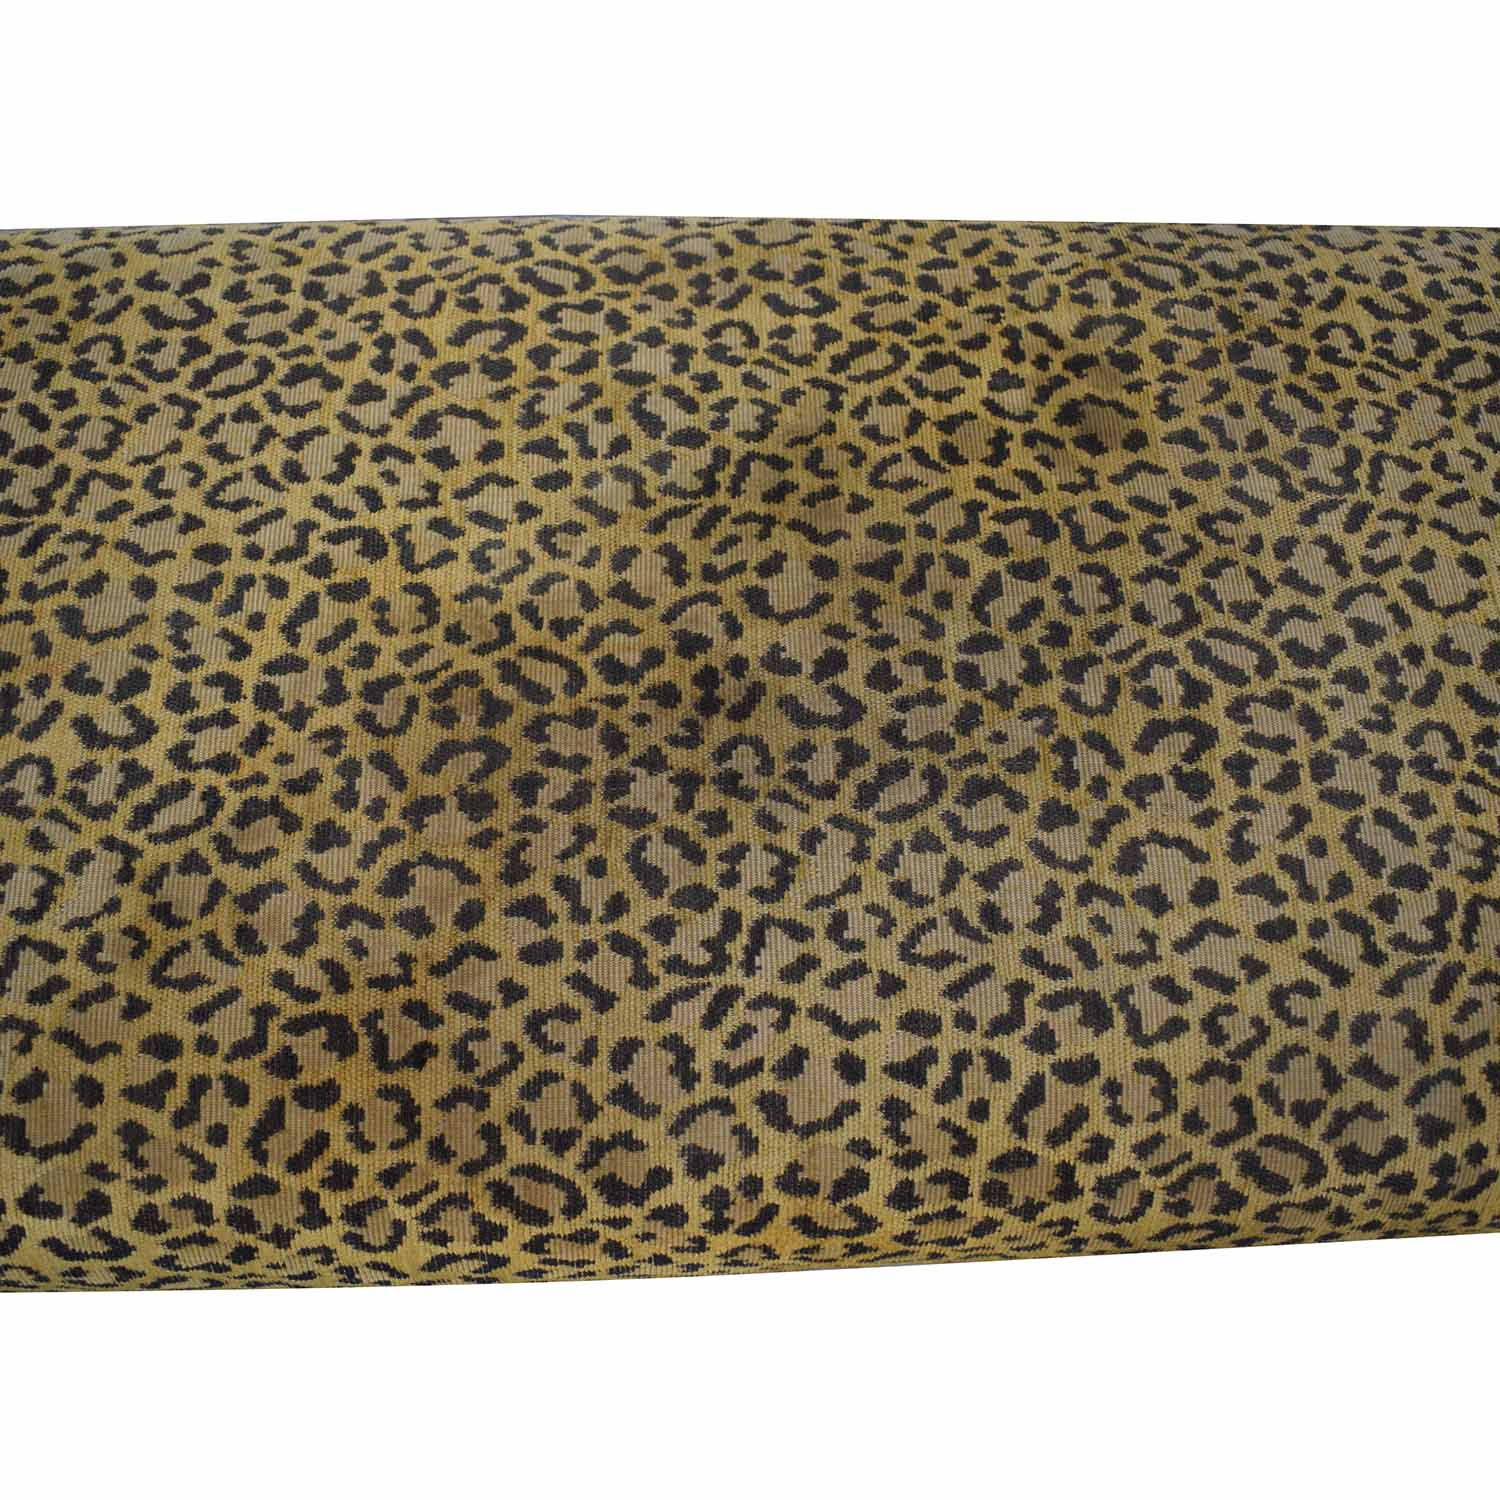 shop Furniture Masters Furniture Masters Leopard Print Bench online